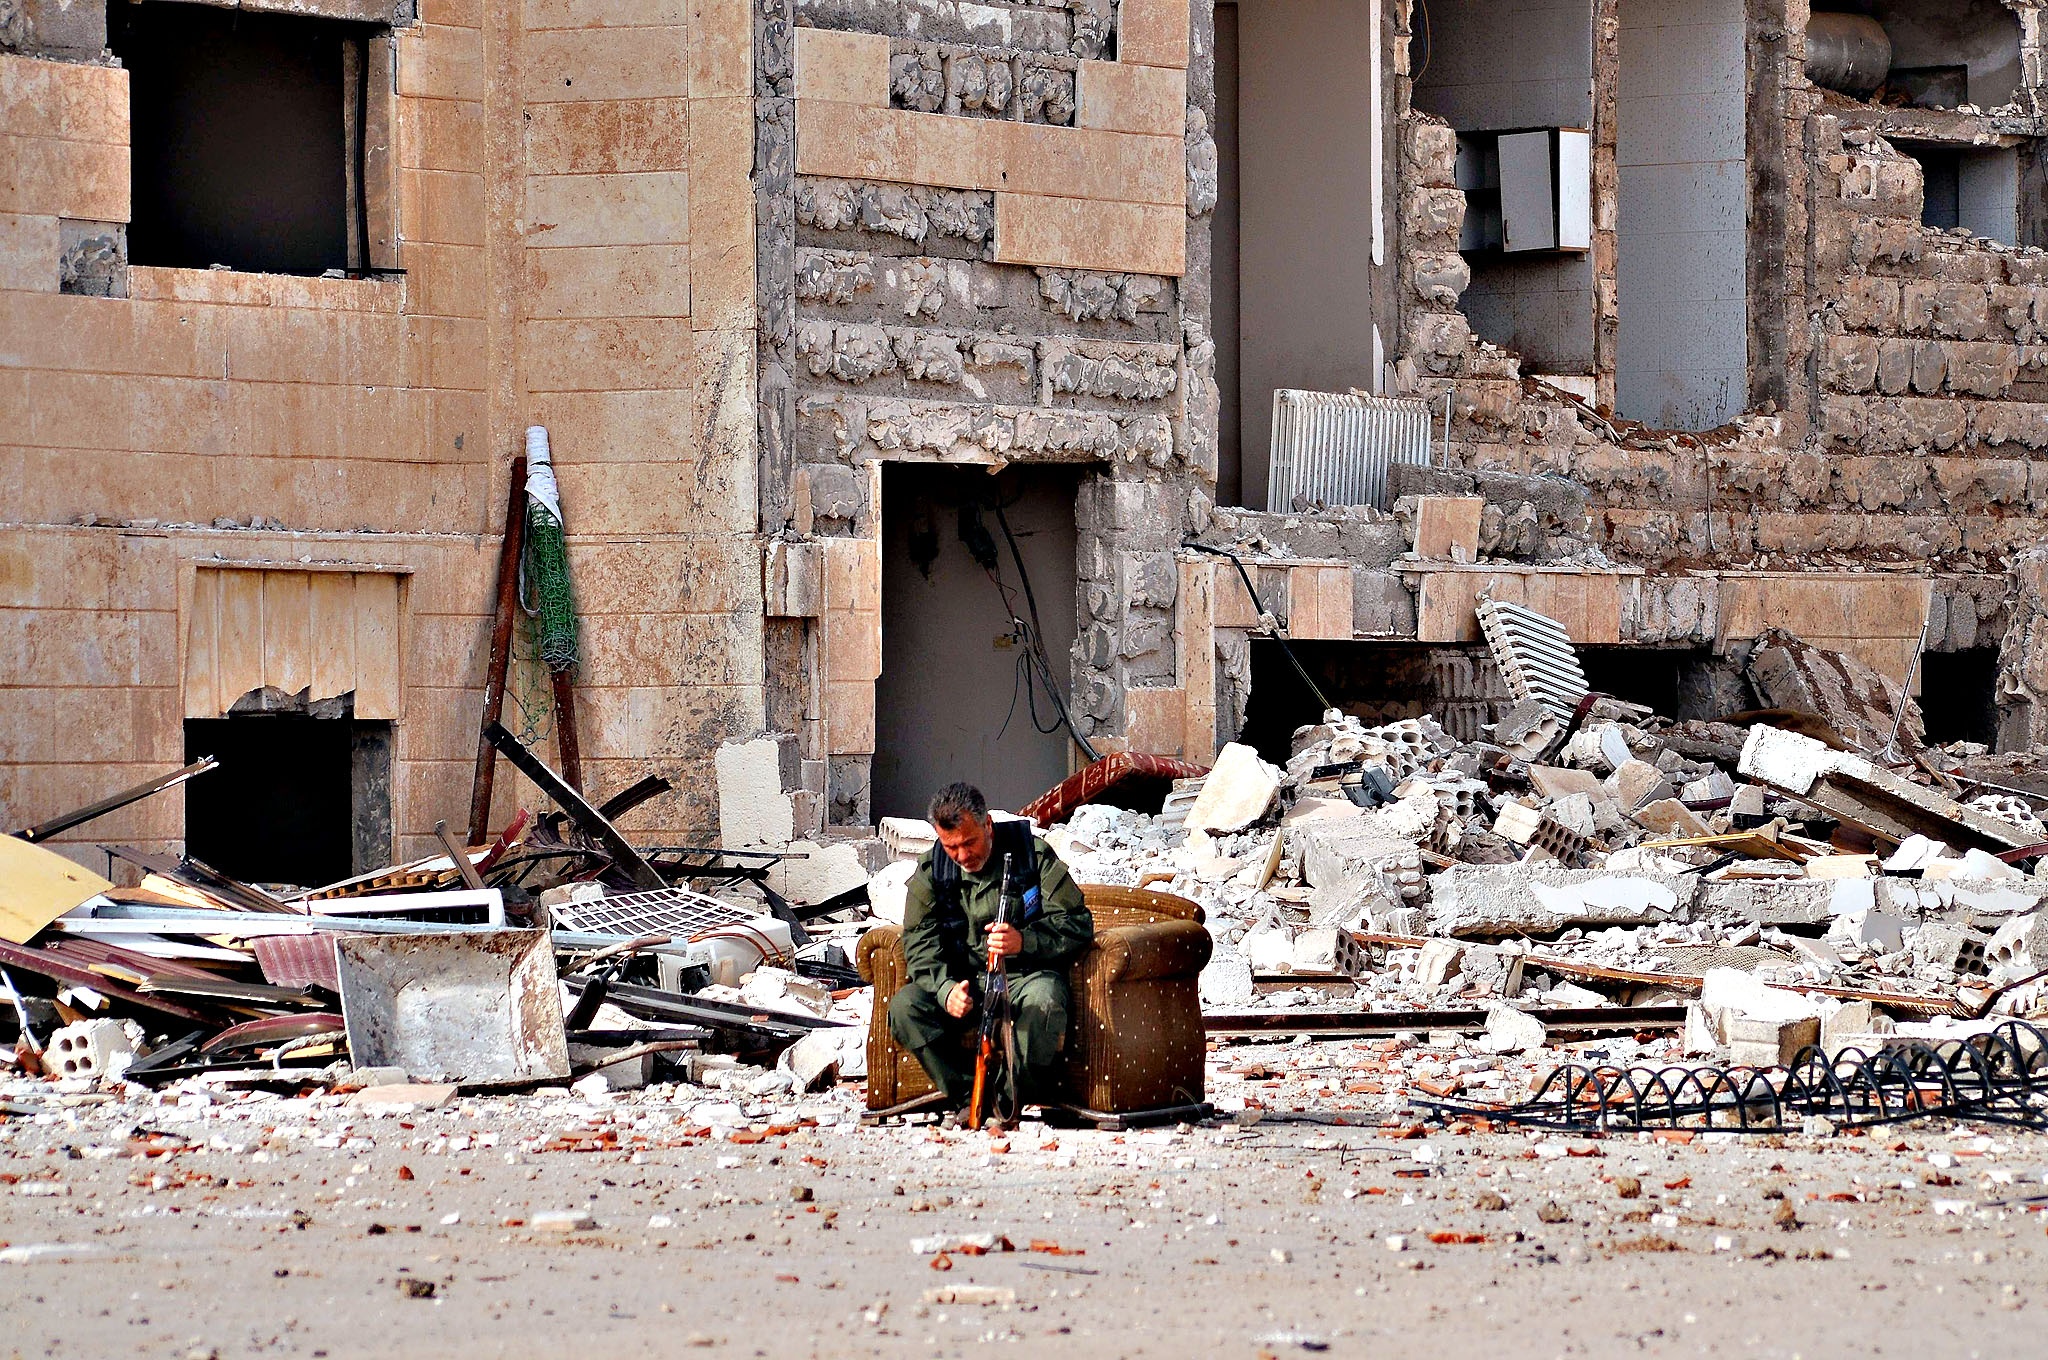 A member of the Kurdish security service sits next to the rubble of the security service headquarters in the northeastern Syrian city of Hasakeh on June 28, 2015, days after Islamic State (IS) group targeted the building with an explosive-rigged vehicle. IS seized two neighbourhoods in southern Hasakeh last week in a new attempt to seize the provincial capital, causing tens of thousands of people to flee, according to the United Nations